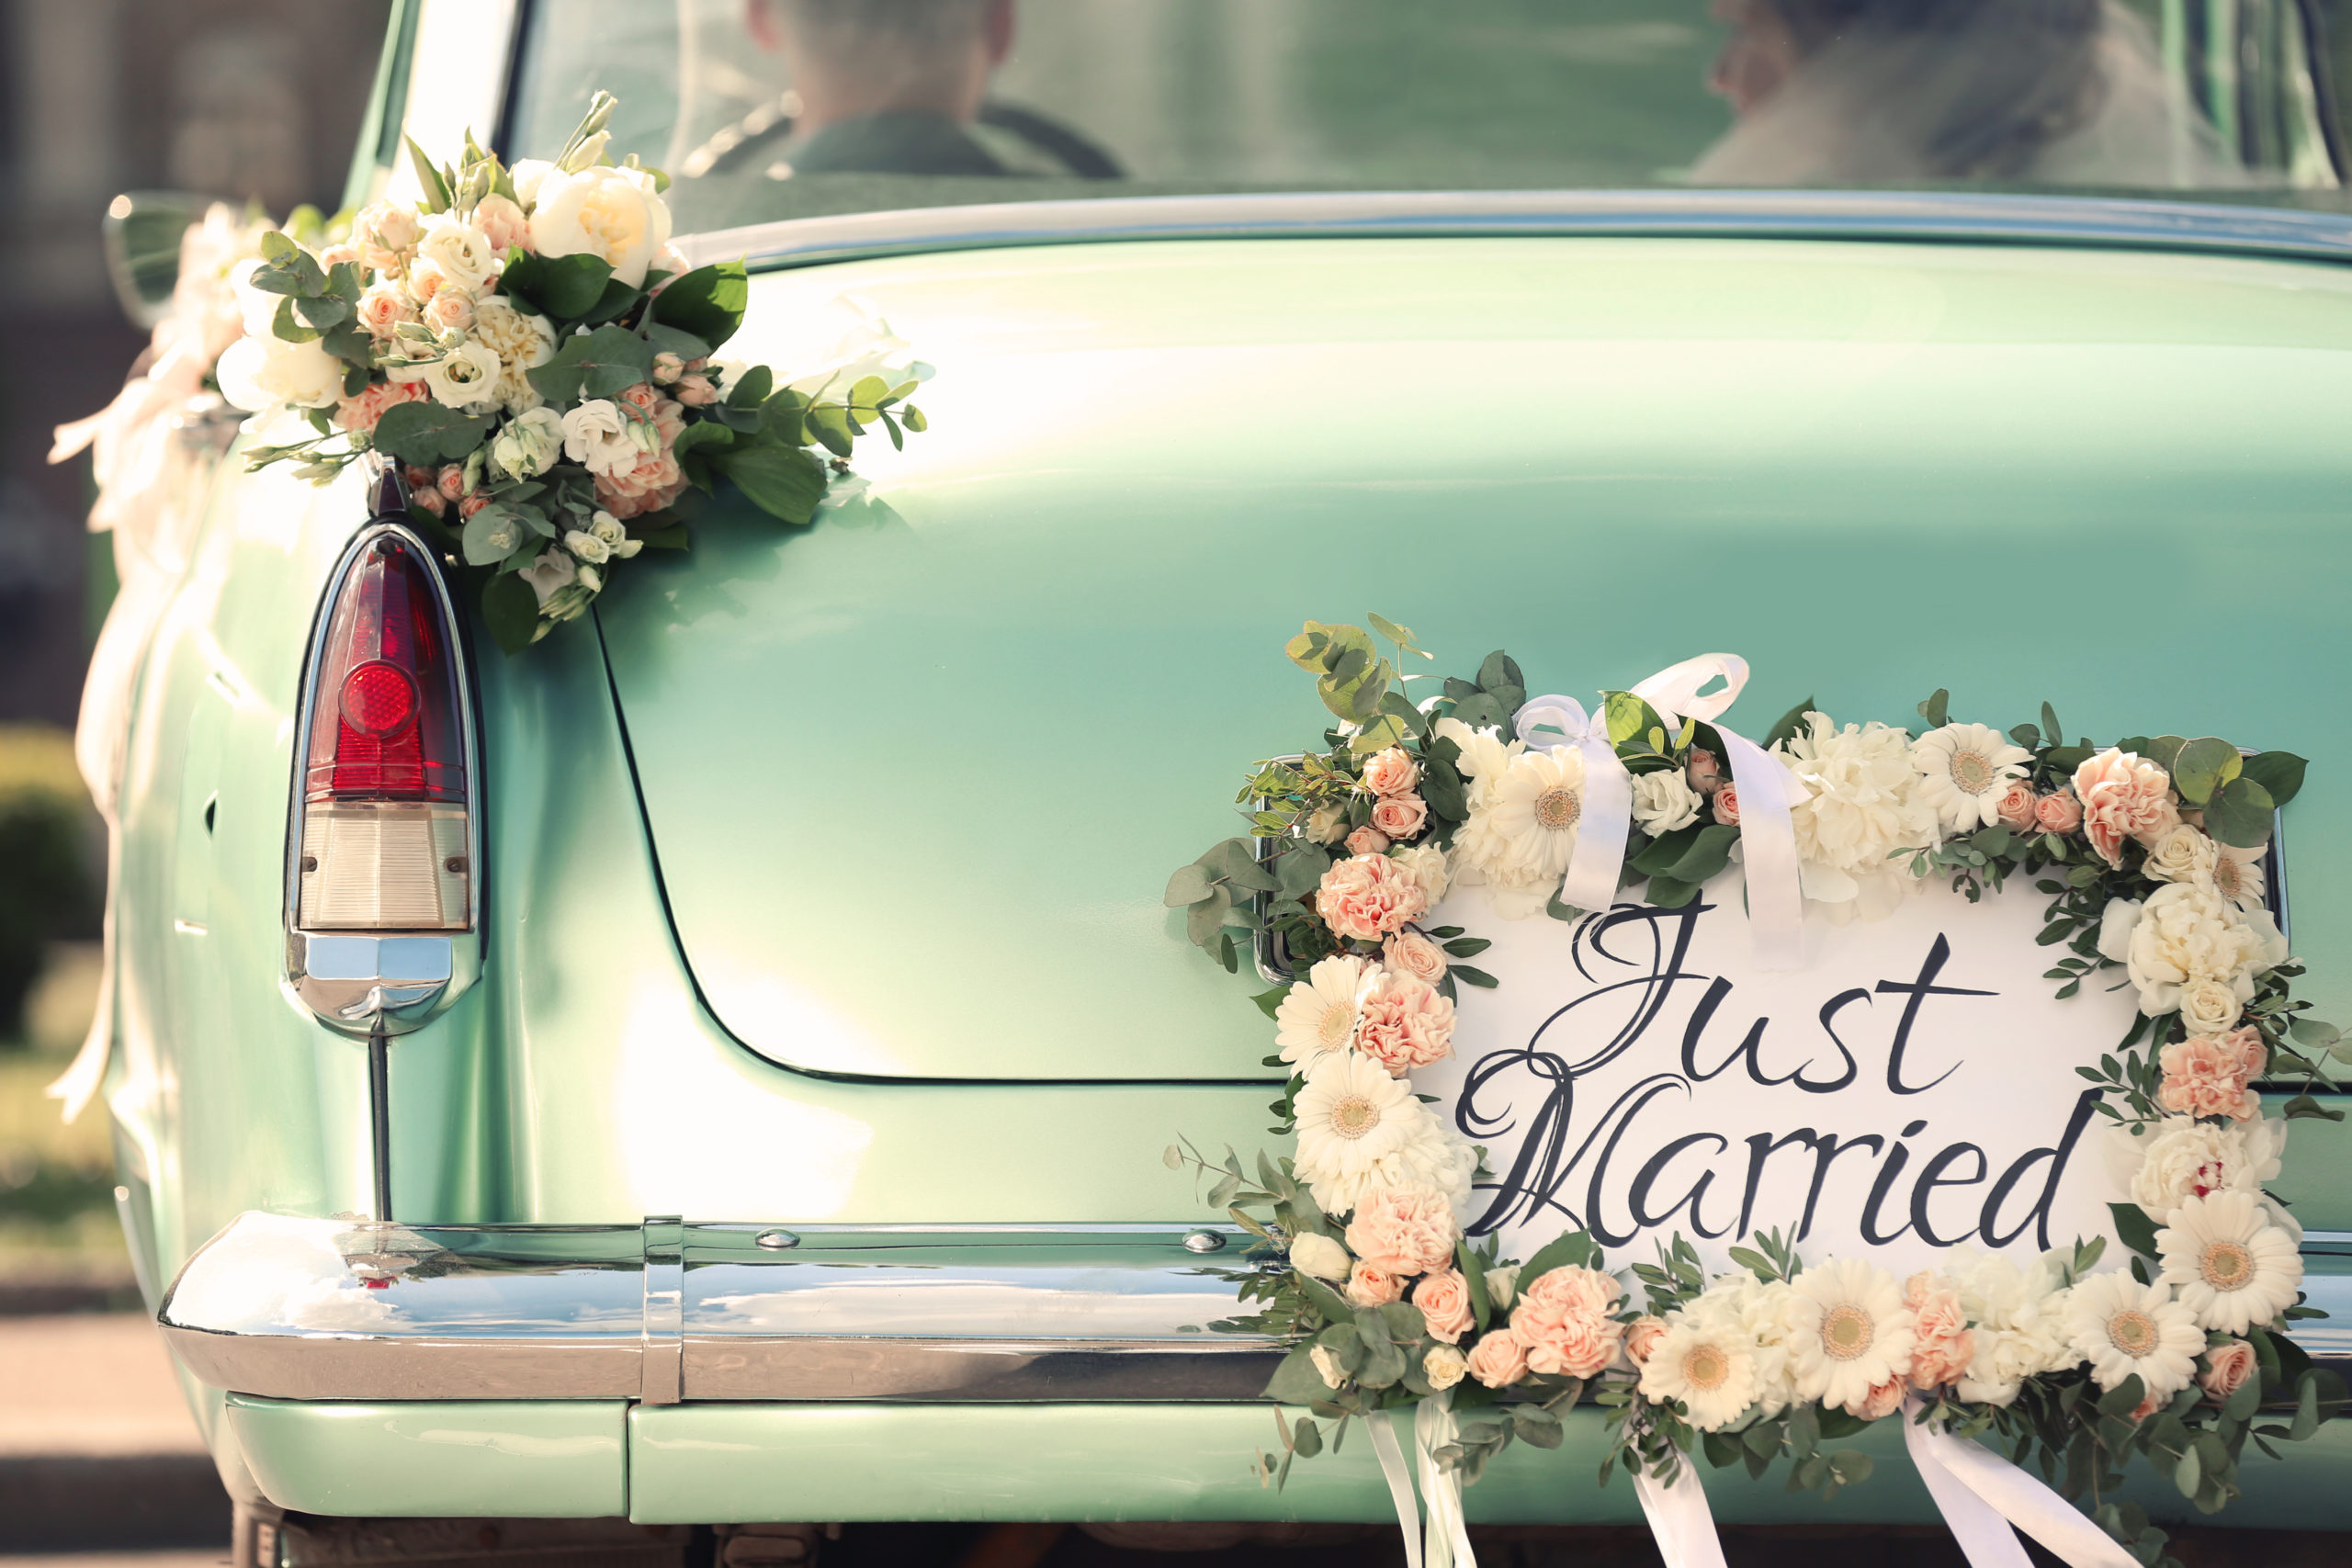 beautiful-wedding-car-plate-just-married-719291203